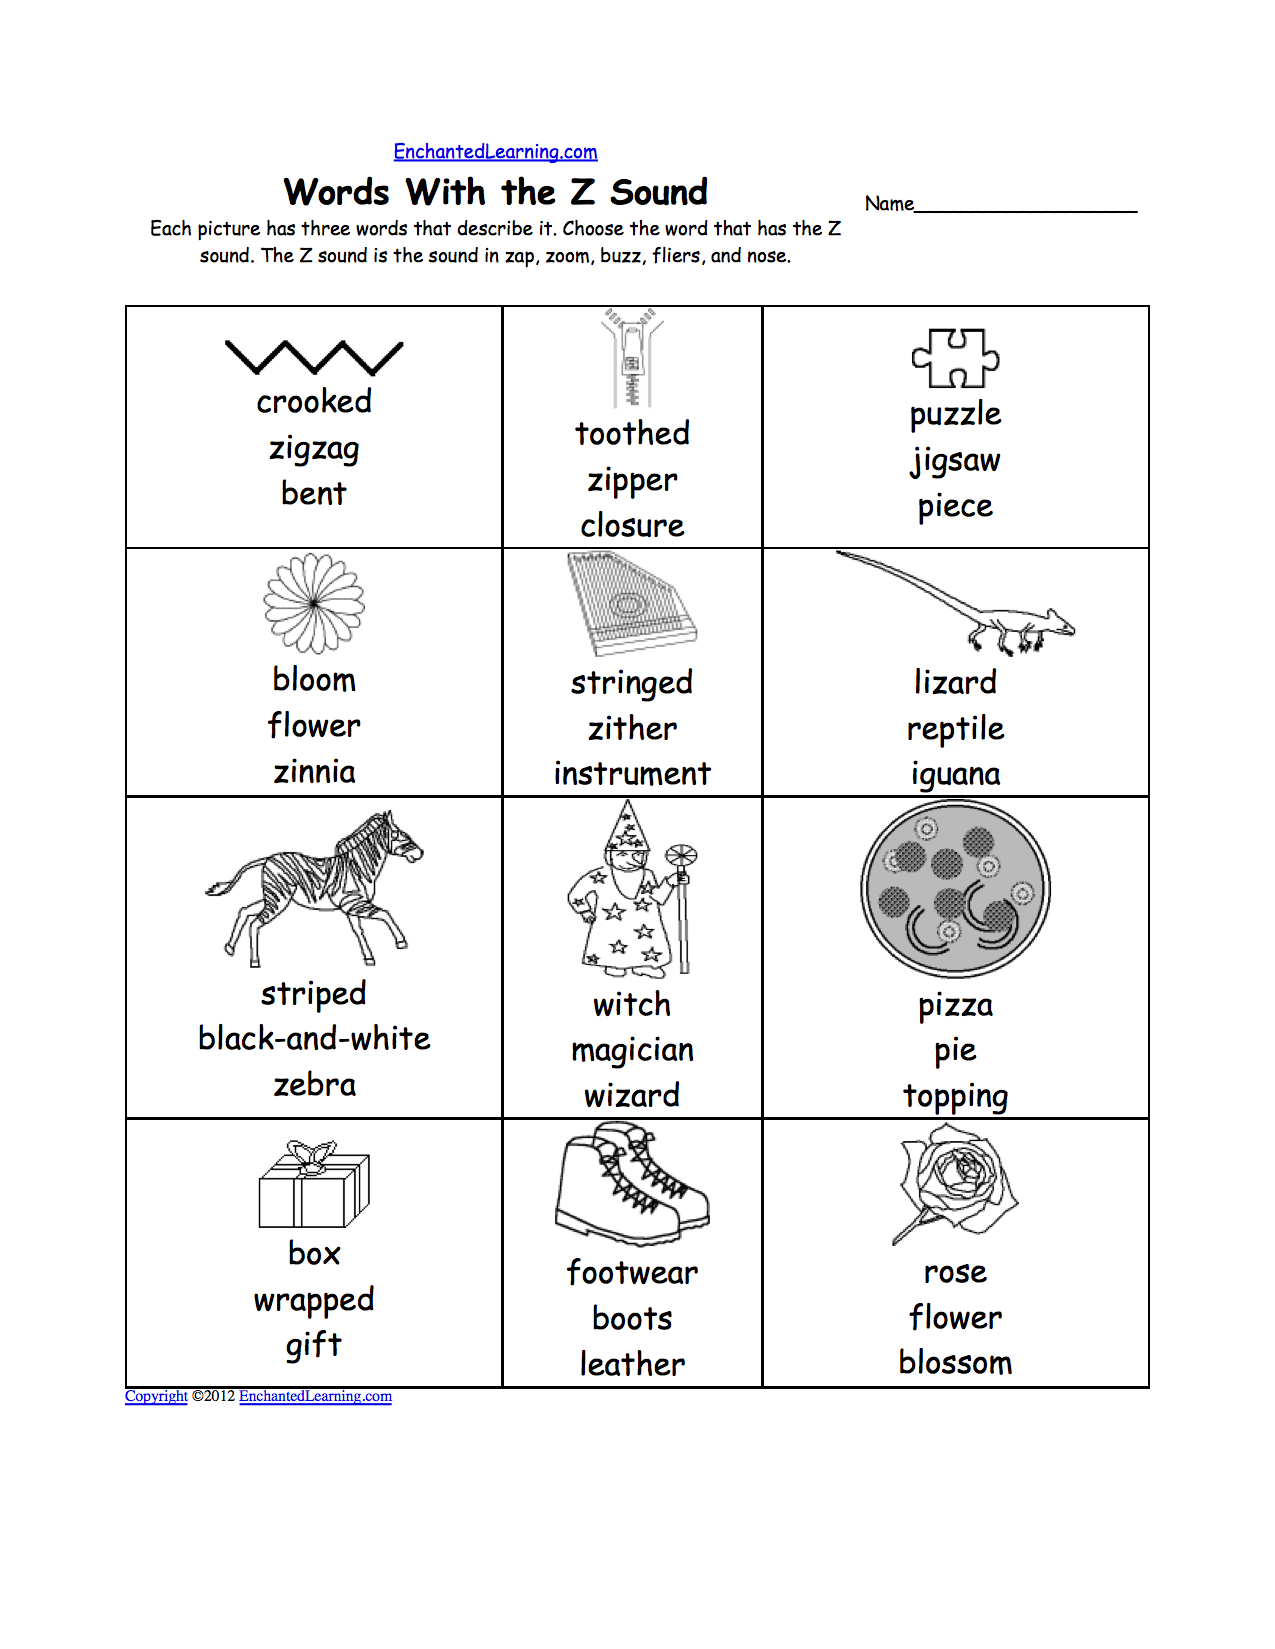 Aldiablosus  Scenic Phonics Worksheets Multiple Choice Worksheets To Print  With Hot Phonics Worksheets Multiple Choice Worksheets To Print  Enchantedlearningcom With Alluring Rounding To The Nearest Hundred Thousand Worksheets Also Saxon Math Worksheets Nd Grade In Addition Synonyms Worksheets Nd Grade And Scholastic Printable Worksheets As Well As Th Grade Punctuation Worksheets Additionally Genogram Worksheet From Enchantedlearningcom With Aldiablosus  Hot Phonics Worksheets Multiple Choice Worksheets To Print  With Alluring Phonics Worksheets Multiple Choice Worksheets To Print  Enchantedlearningcom And Scenic Rounding To The Nearest Hundred Thousand Worksheets Also Saxon Math Worksheets Nd Grade In Addition Synonyms Worksheets Nd Grade From Enchantedlearningcom